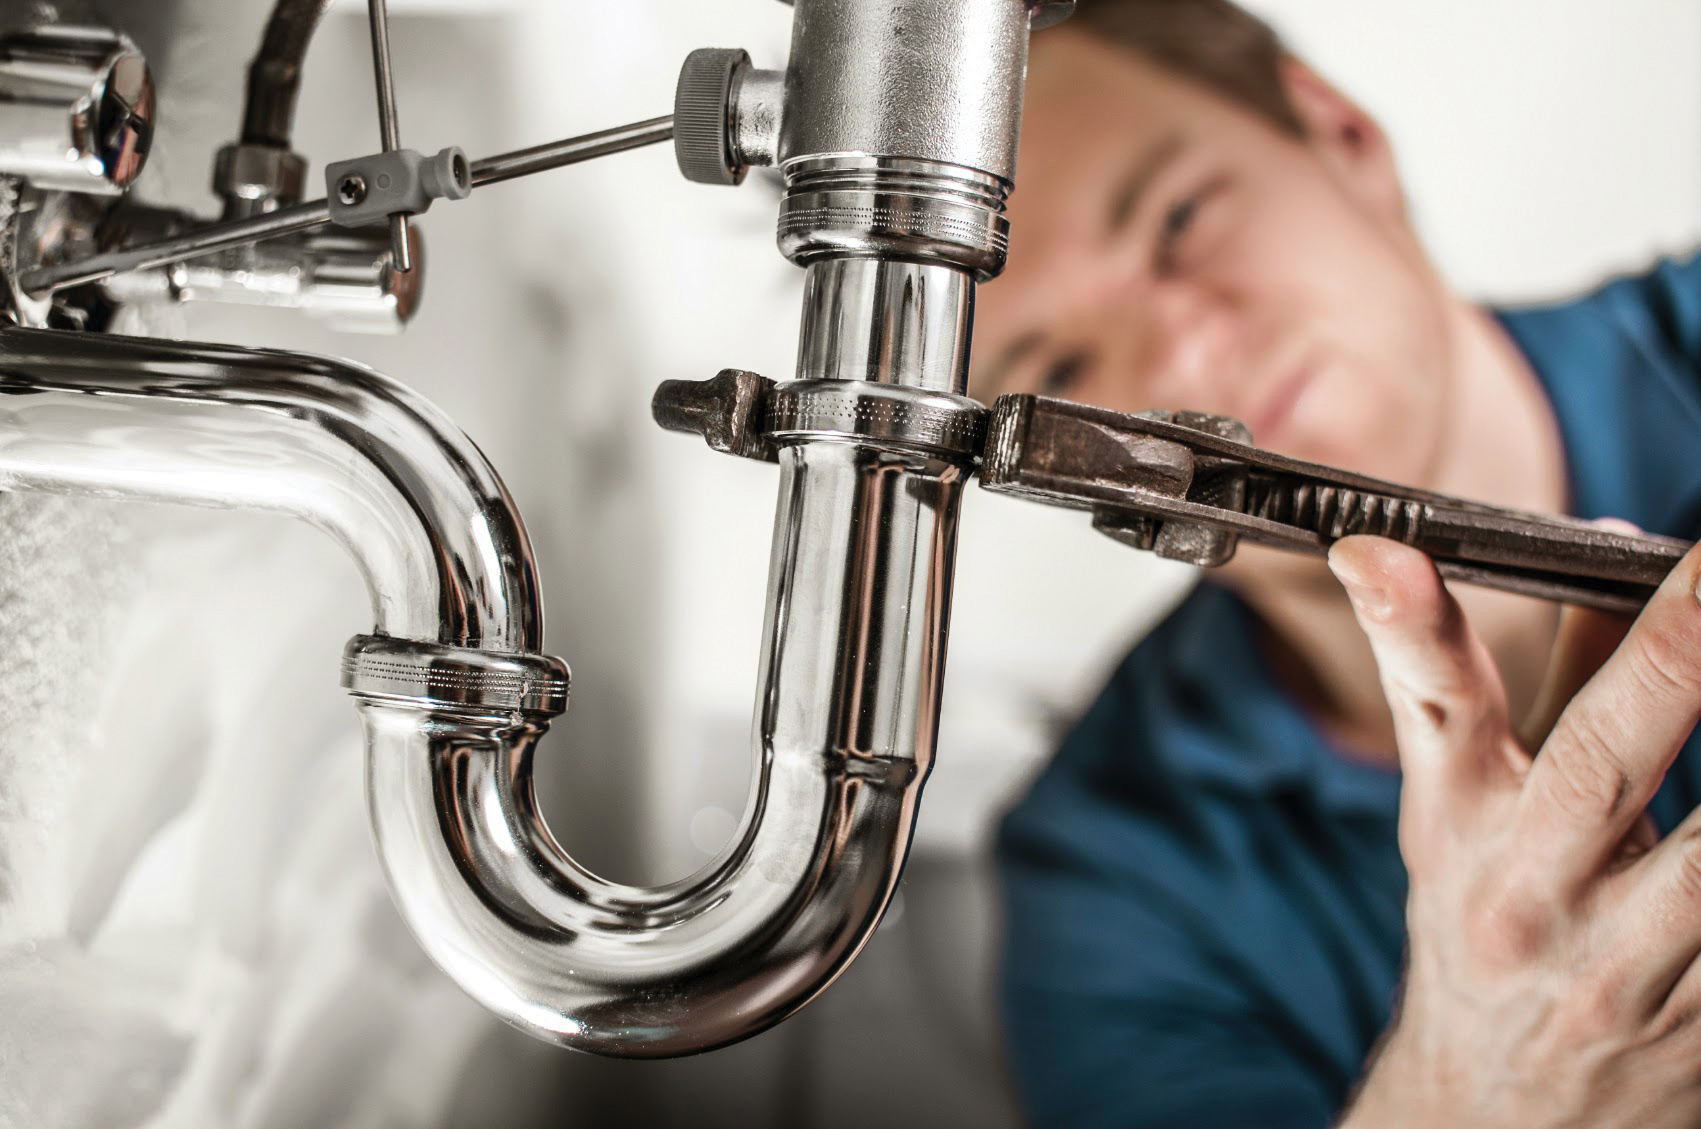 No job is too big or too small. With an already extensive commercial structure in place, the city of Kalispell contains old buildings that require plumbing maintenance. Modern Plumbing and Heating will expertly repair these systems..